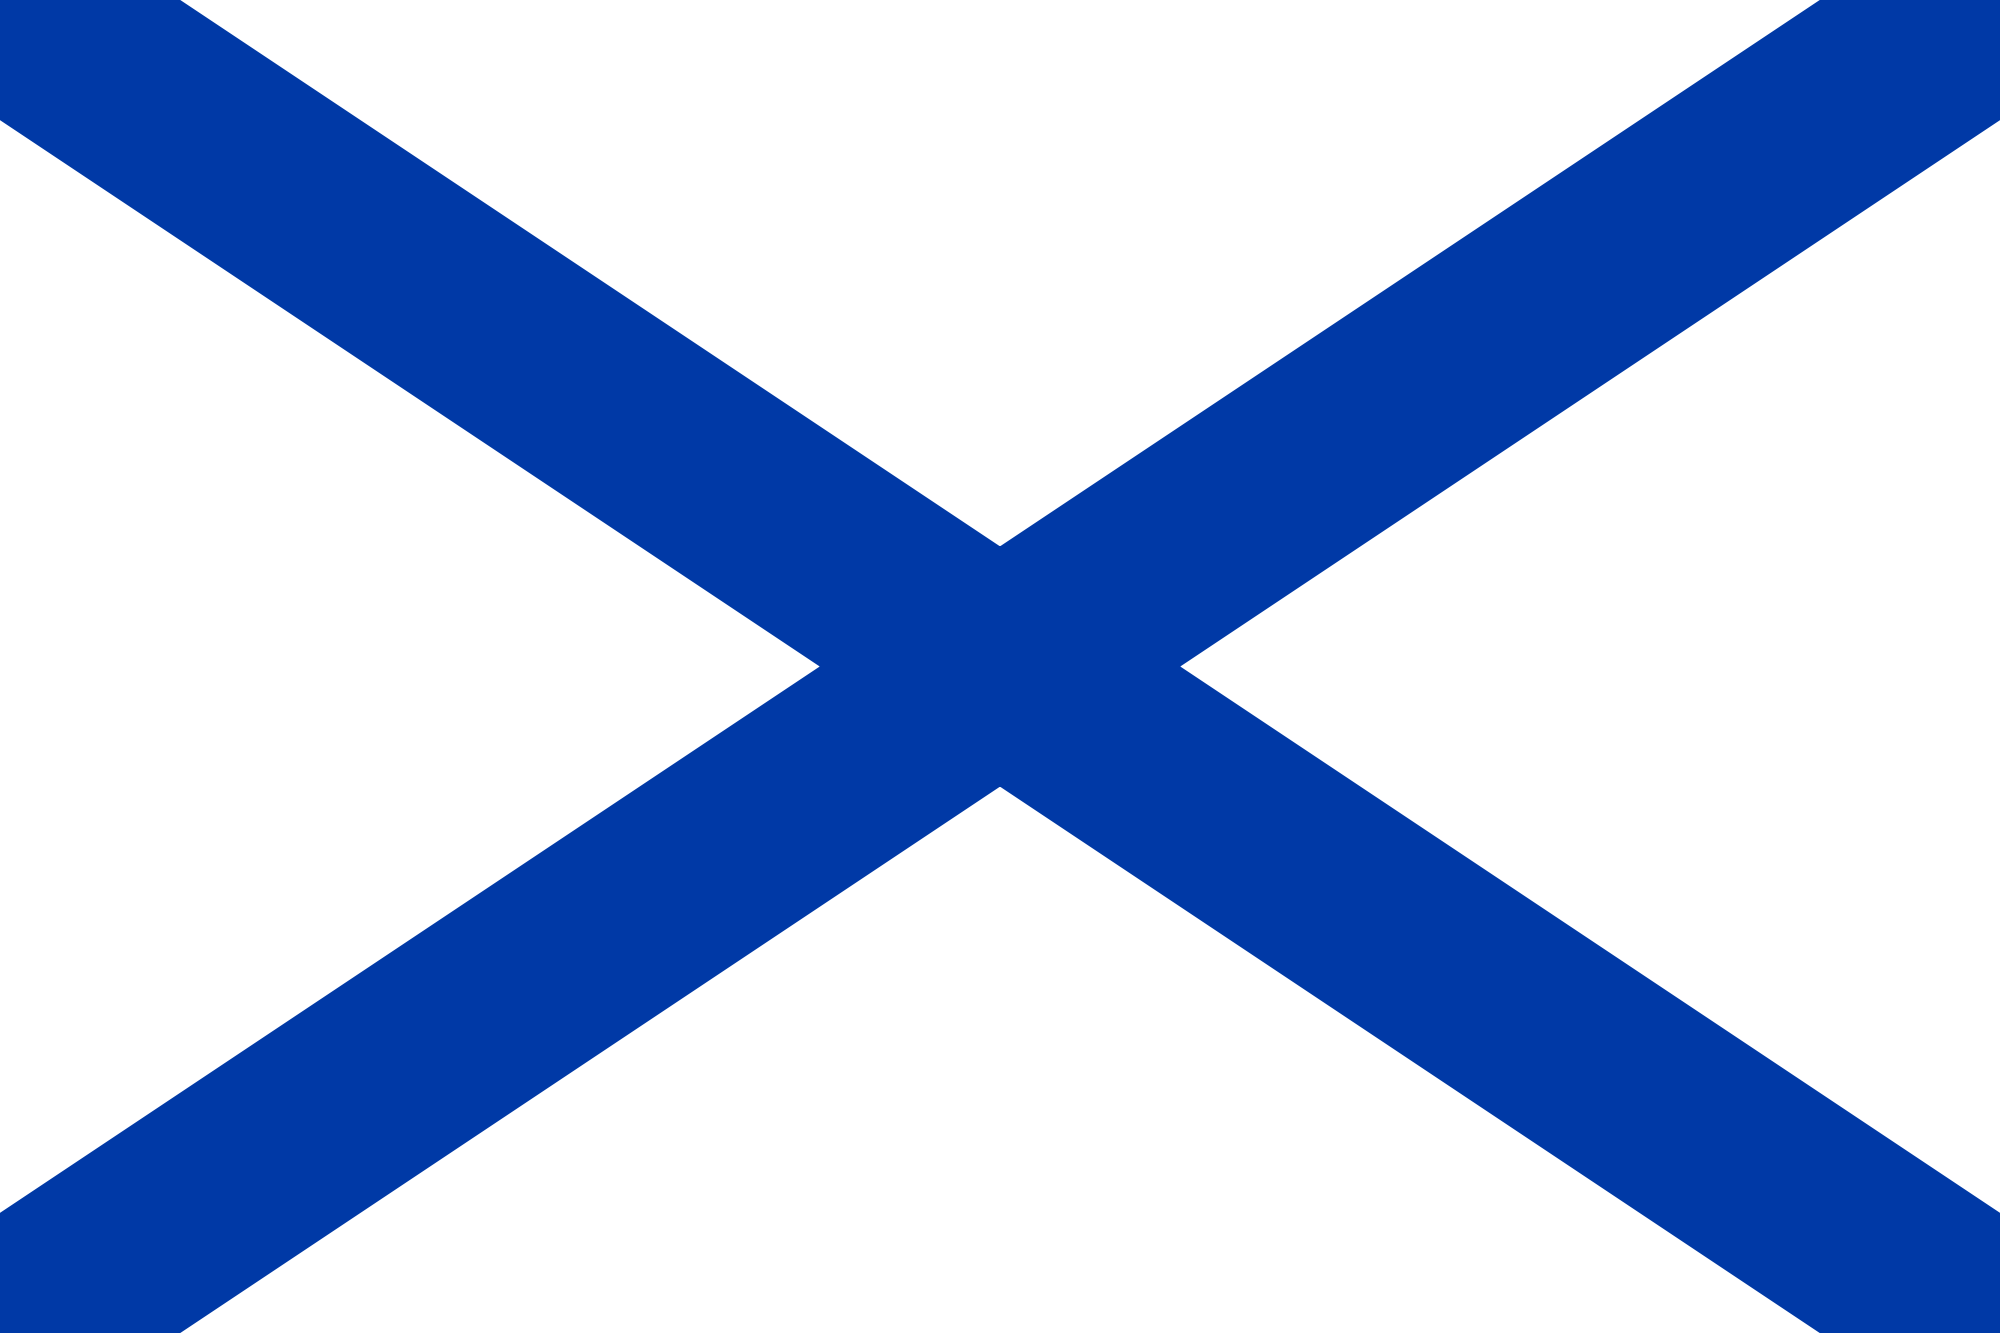 Russia (Naval ensign)